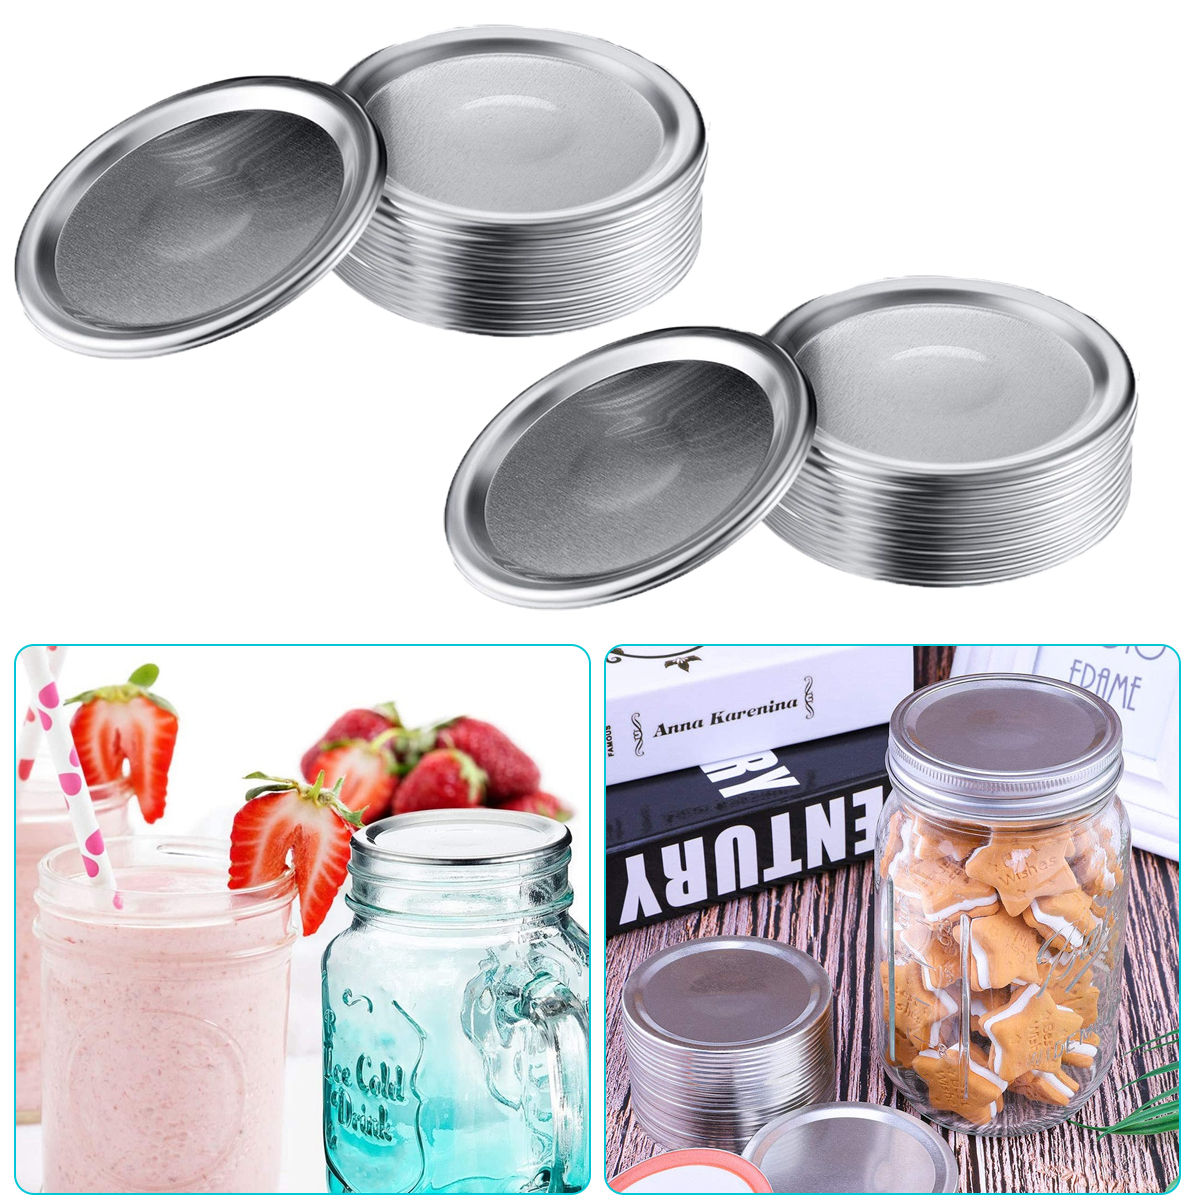 WDong 48 Pcs Canning Lids with Silicone Seals Rings Split-Type Reusable Leak Proof Storage Solid Canning Jar Caps Regular Mouth Mason Jar Lids 86mm, Silver